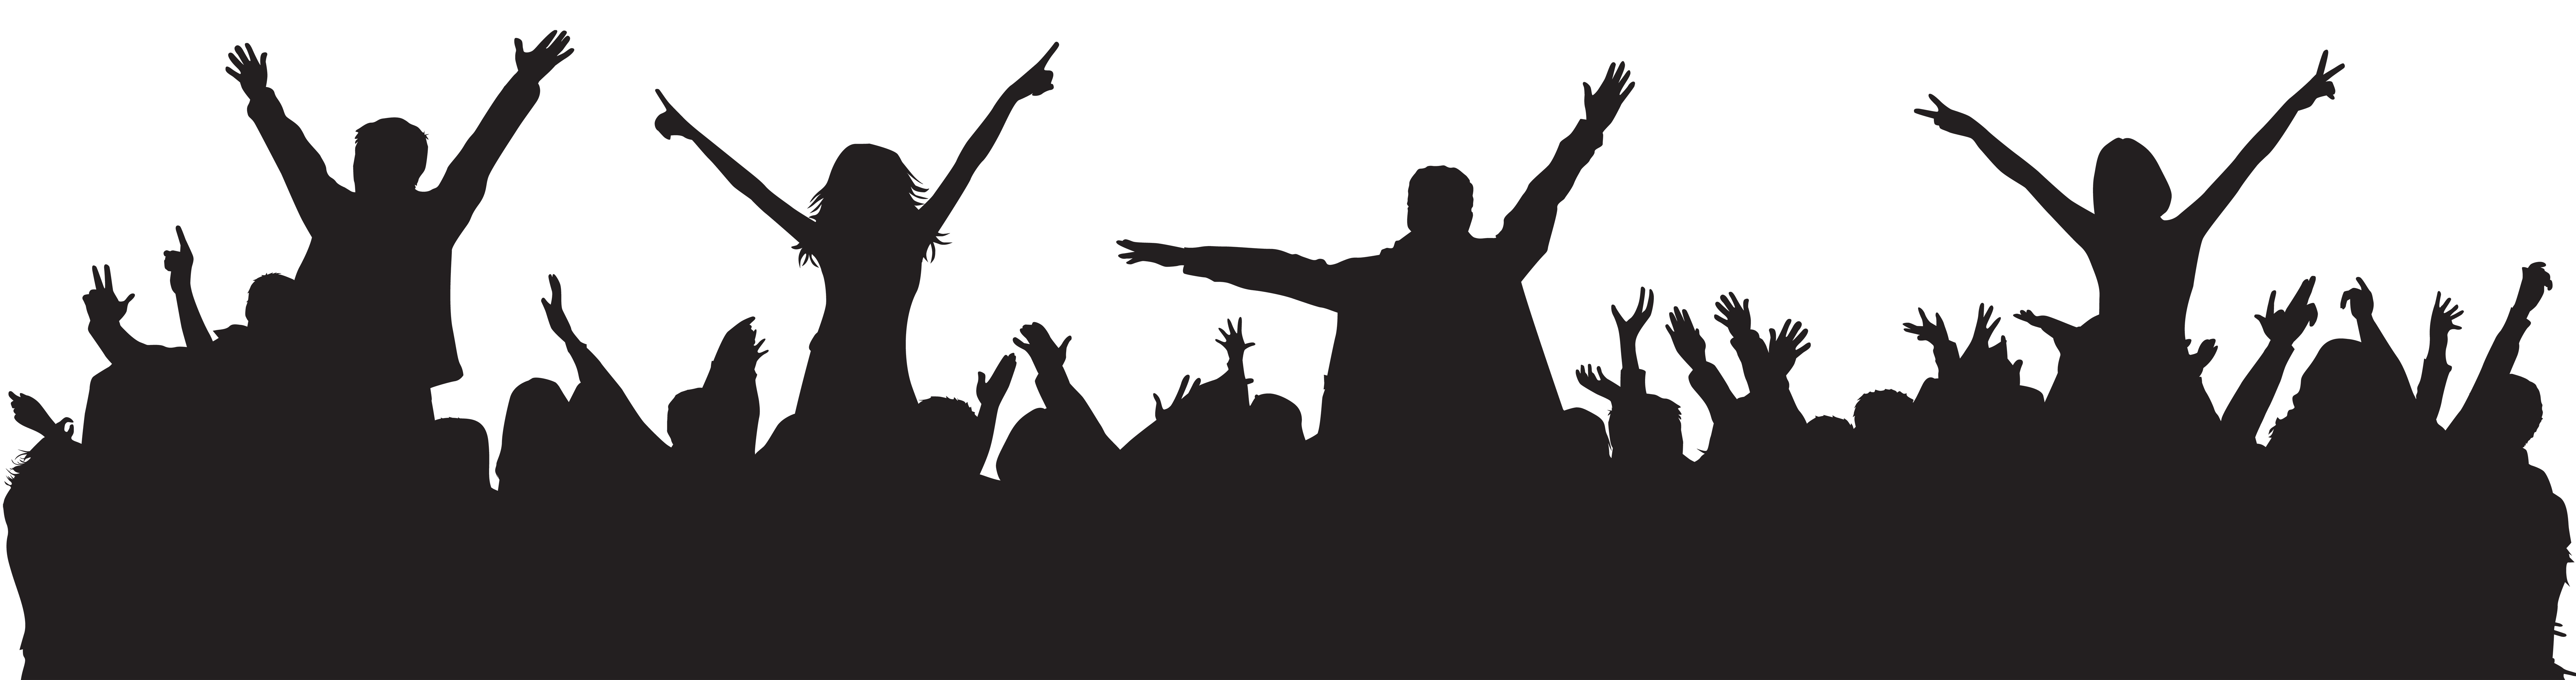 Party silhouette png. People clip art image